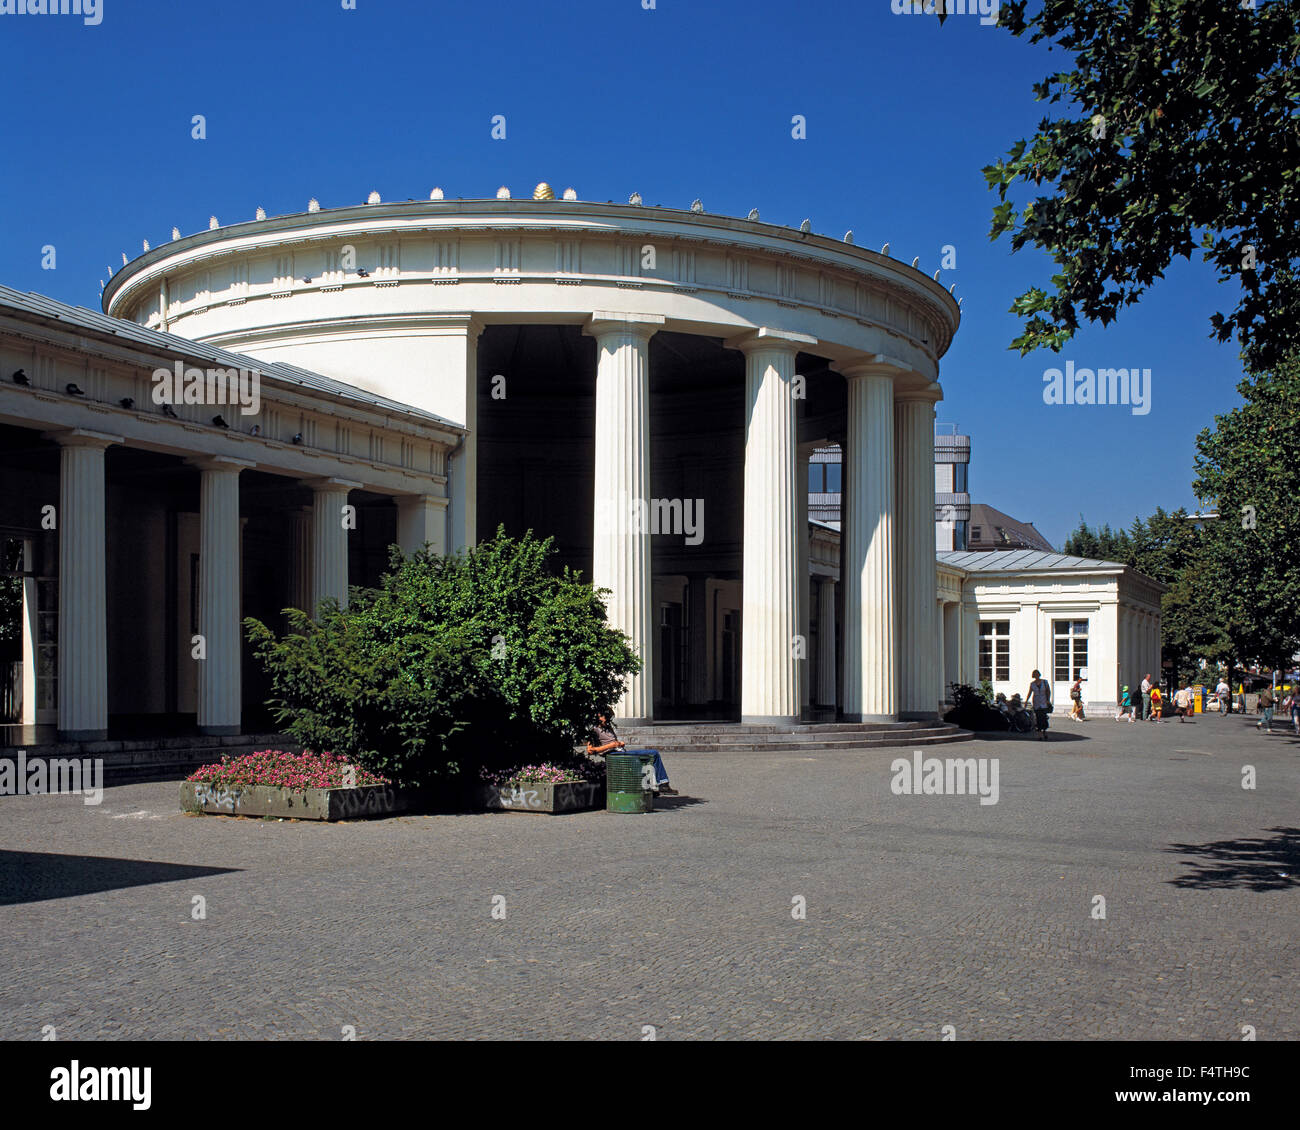 Bad Aachen bad aachen stock photos bad aachen stock images alamy